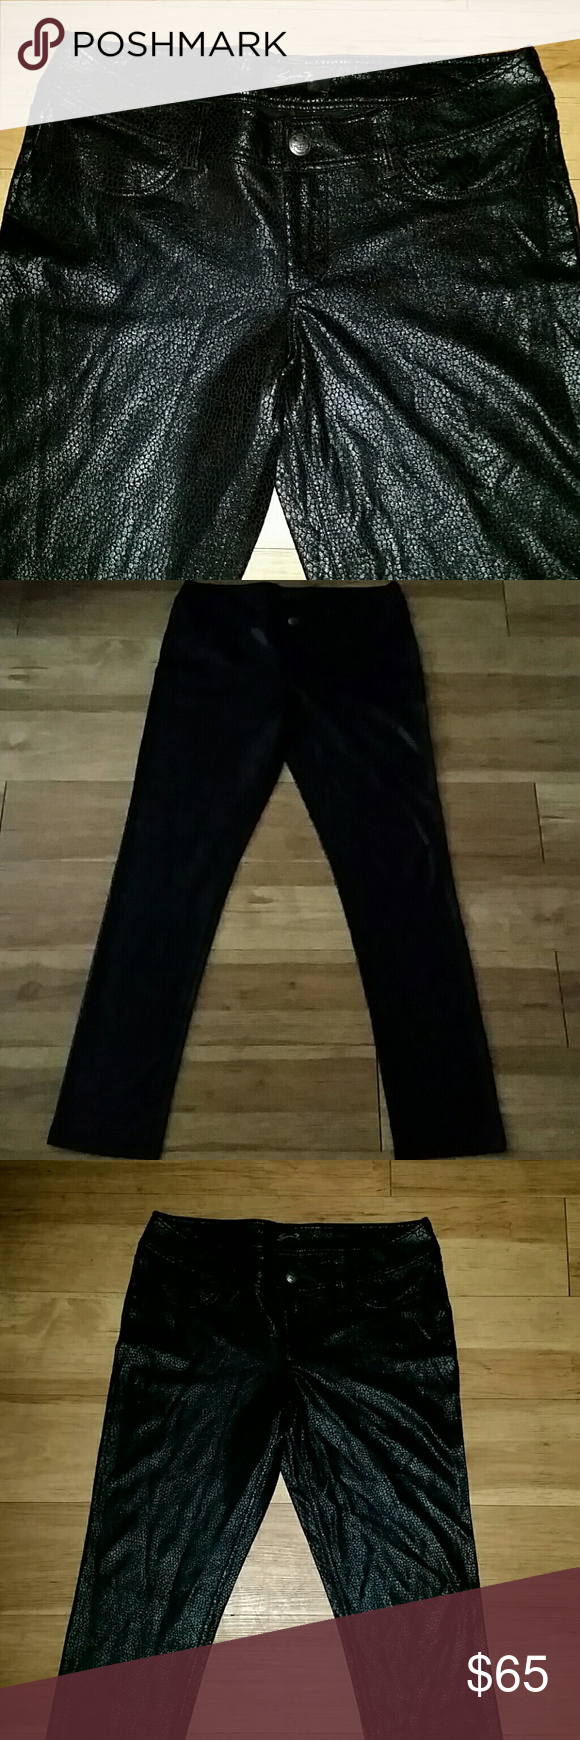 Seven7 animal print jeans Black color, in like new condition, spandex Seven7 Jeans Skinny